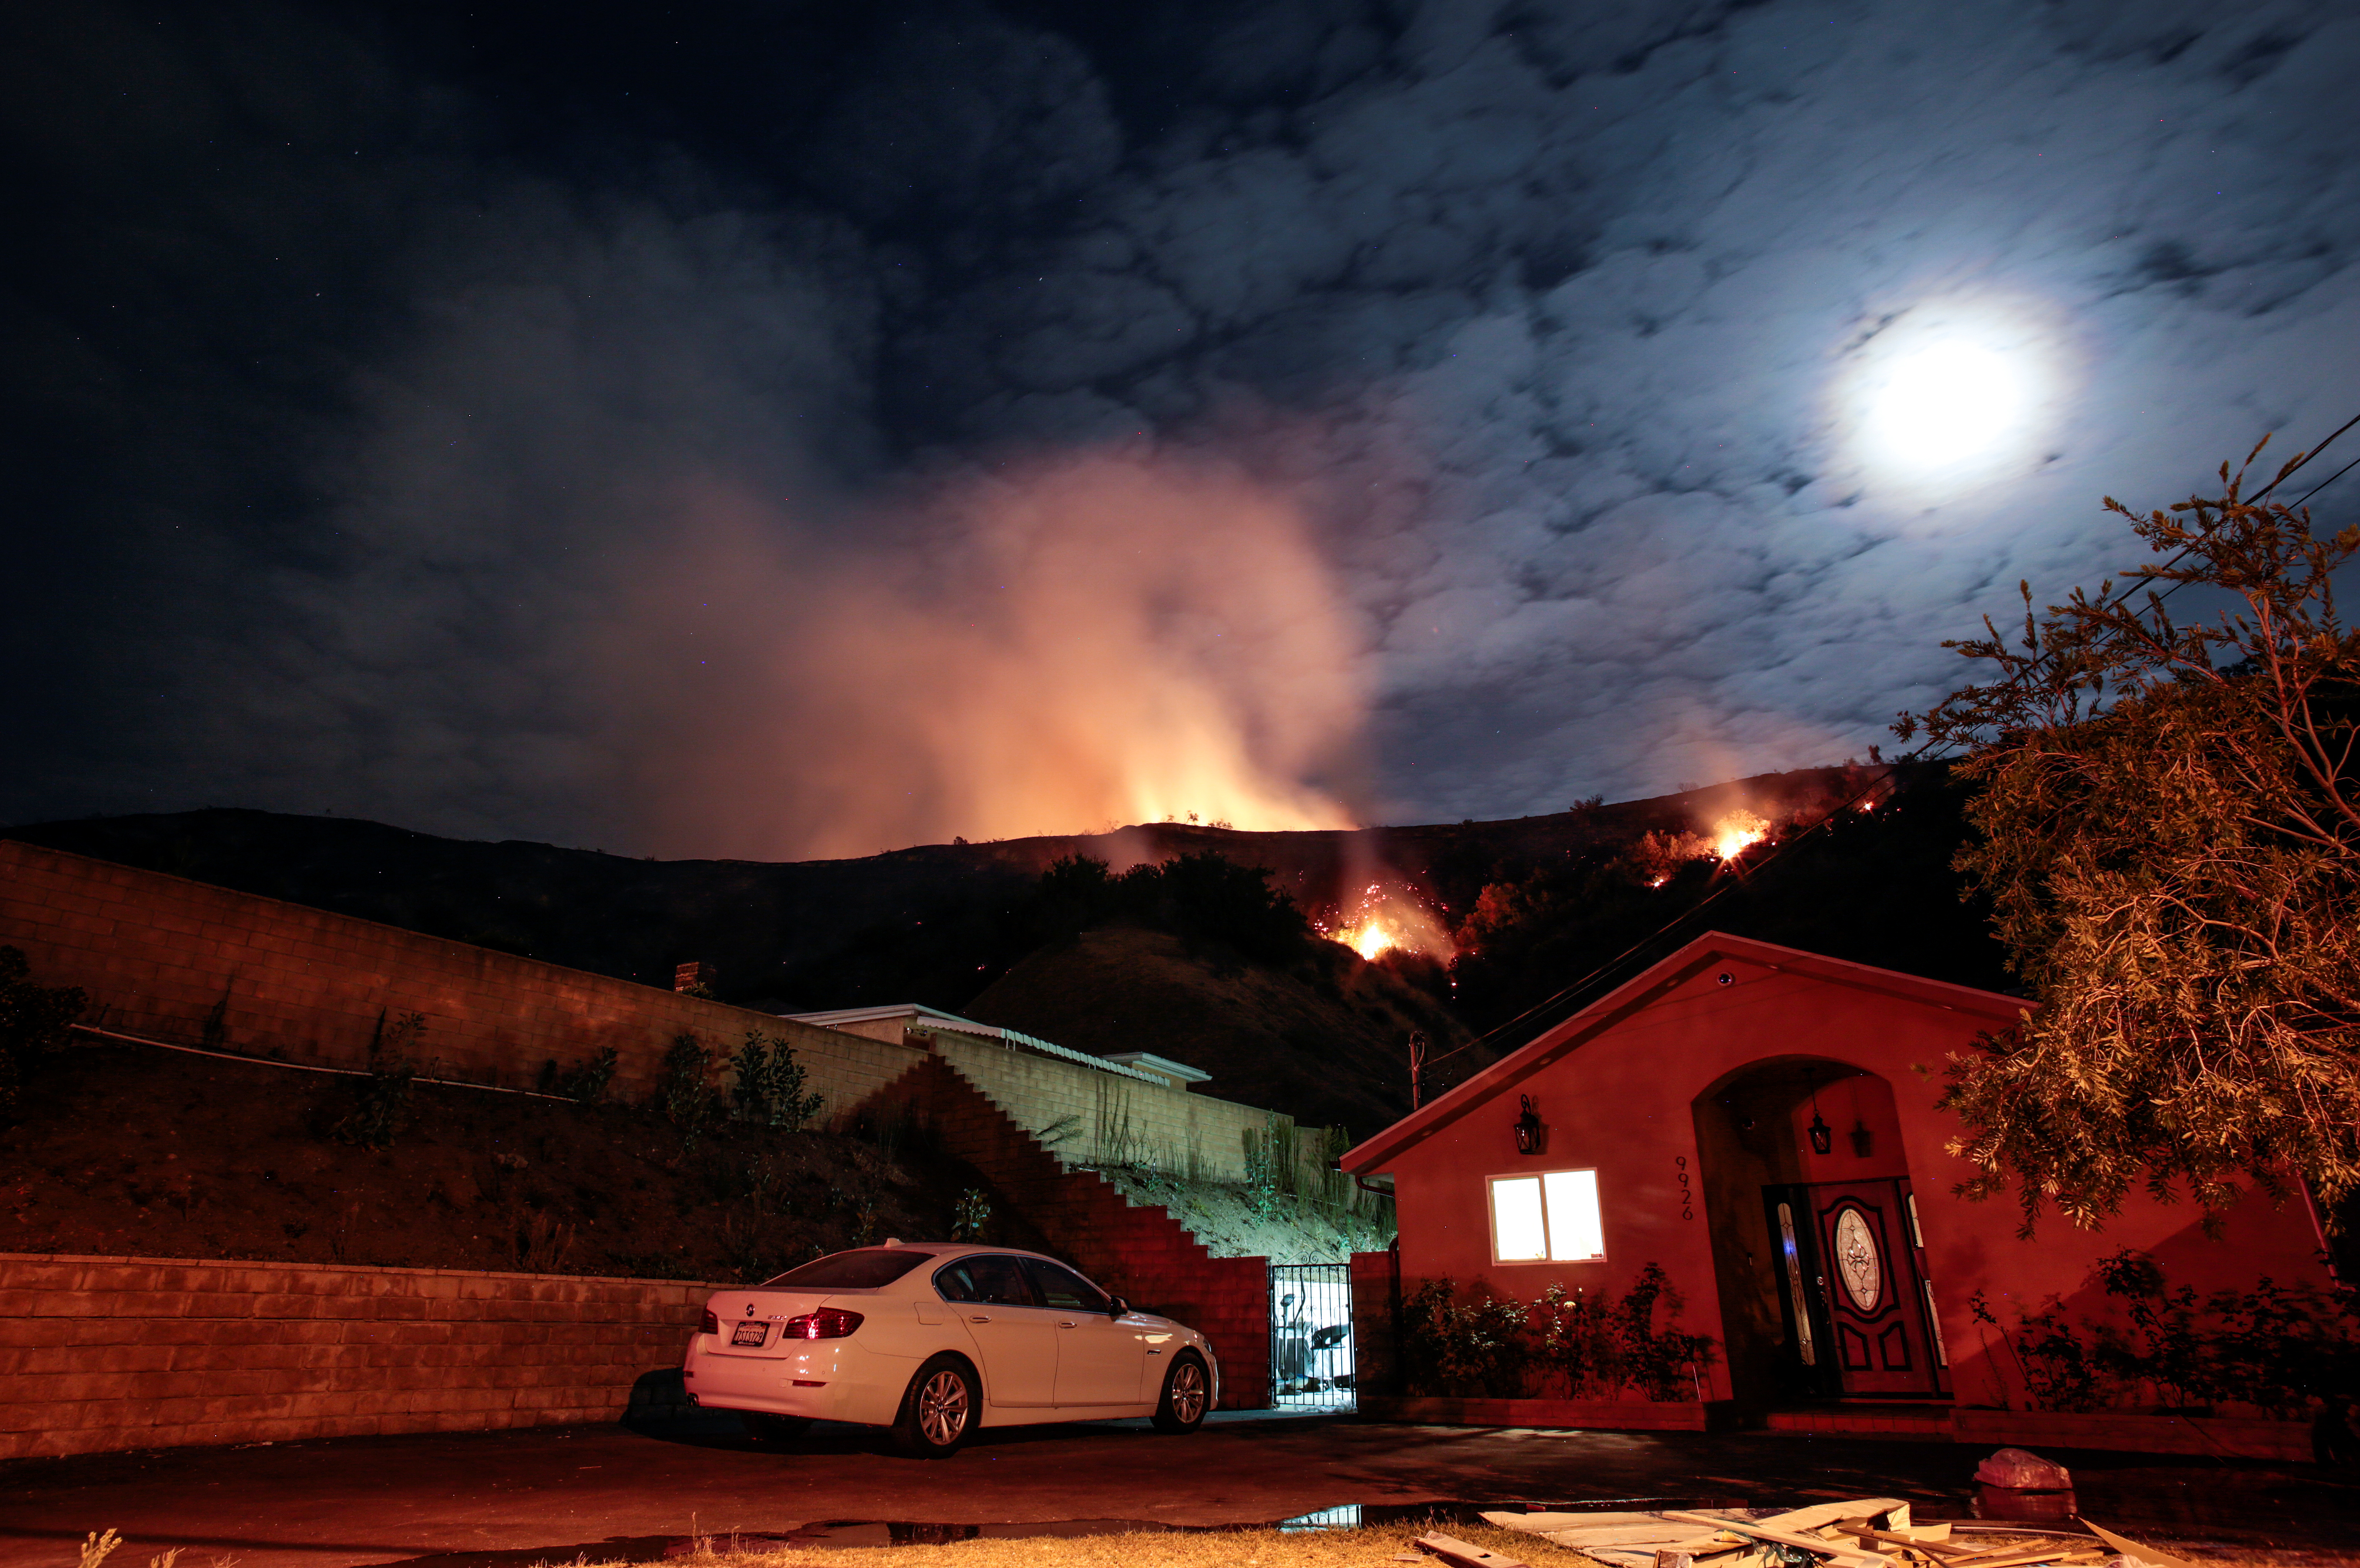 Flames rise over Sun Valley homes during the La Tuna Canyon fire over Burbank. (REUTERS/ Kyle Grillot)